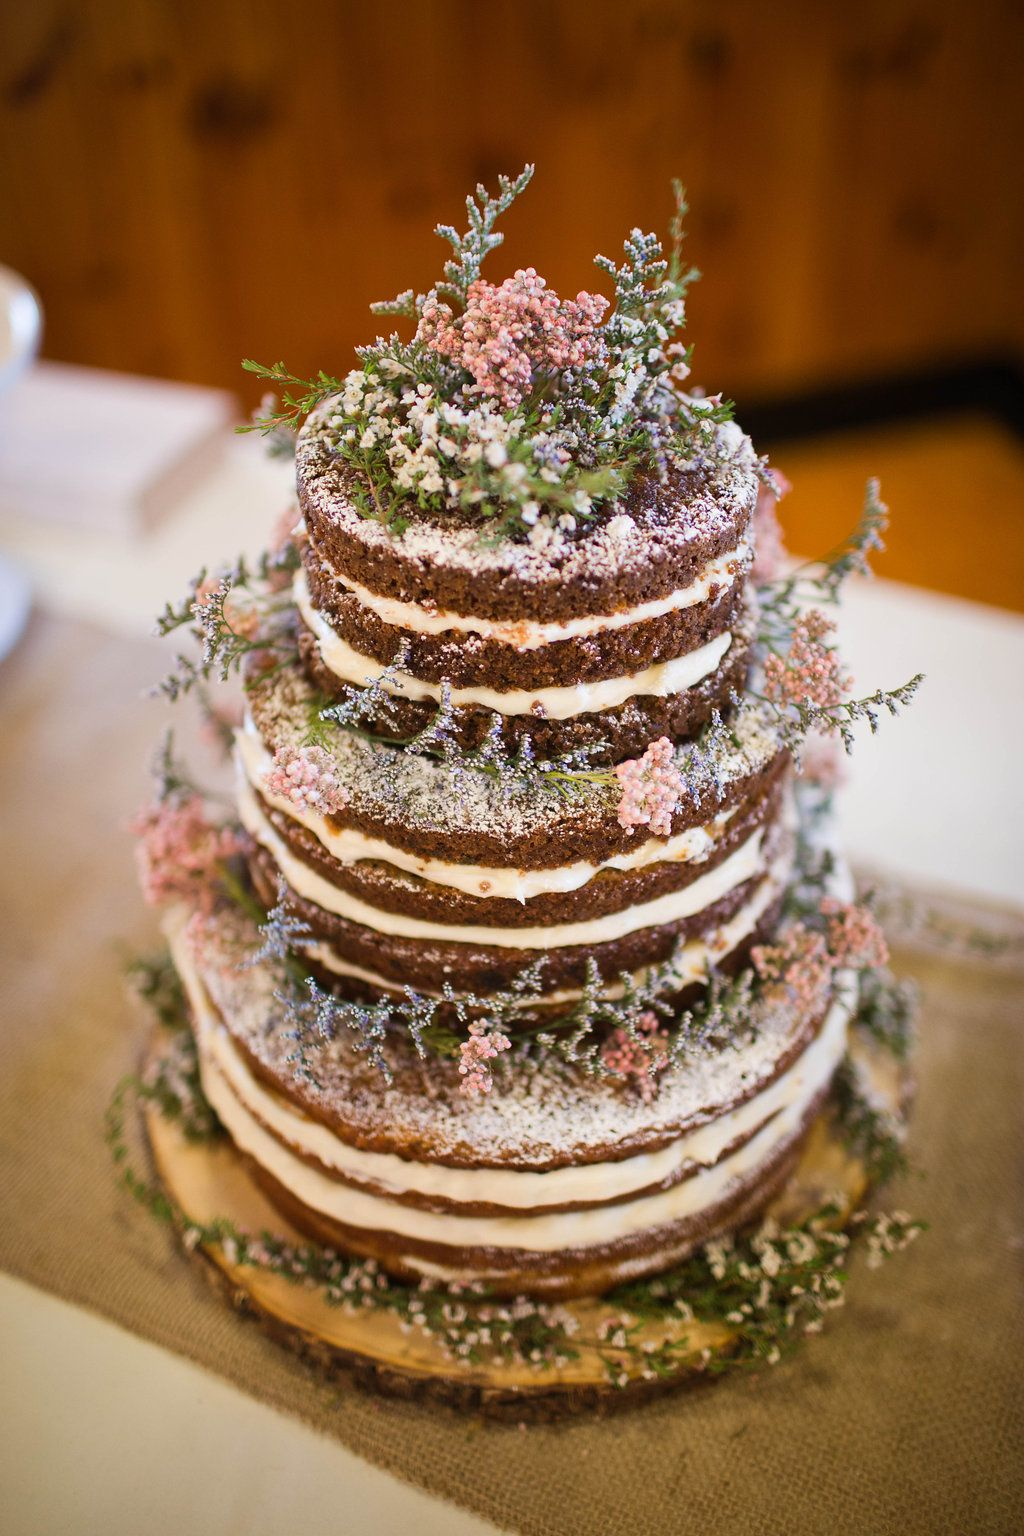 Rustic wedding naked carrot cake    The perfect wedding     Rustic wedding naked carrot cake